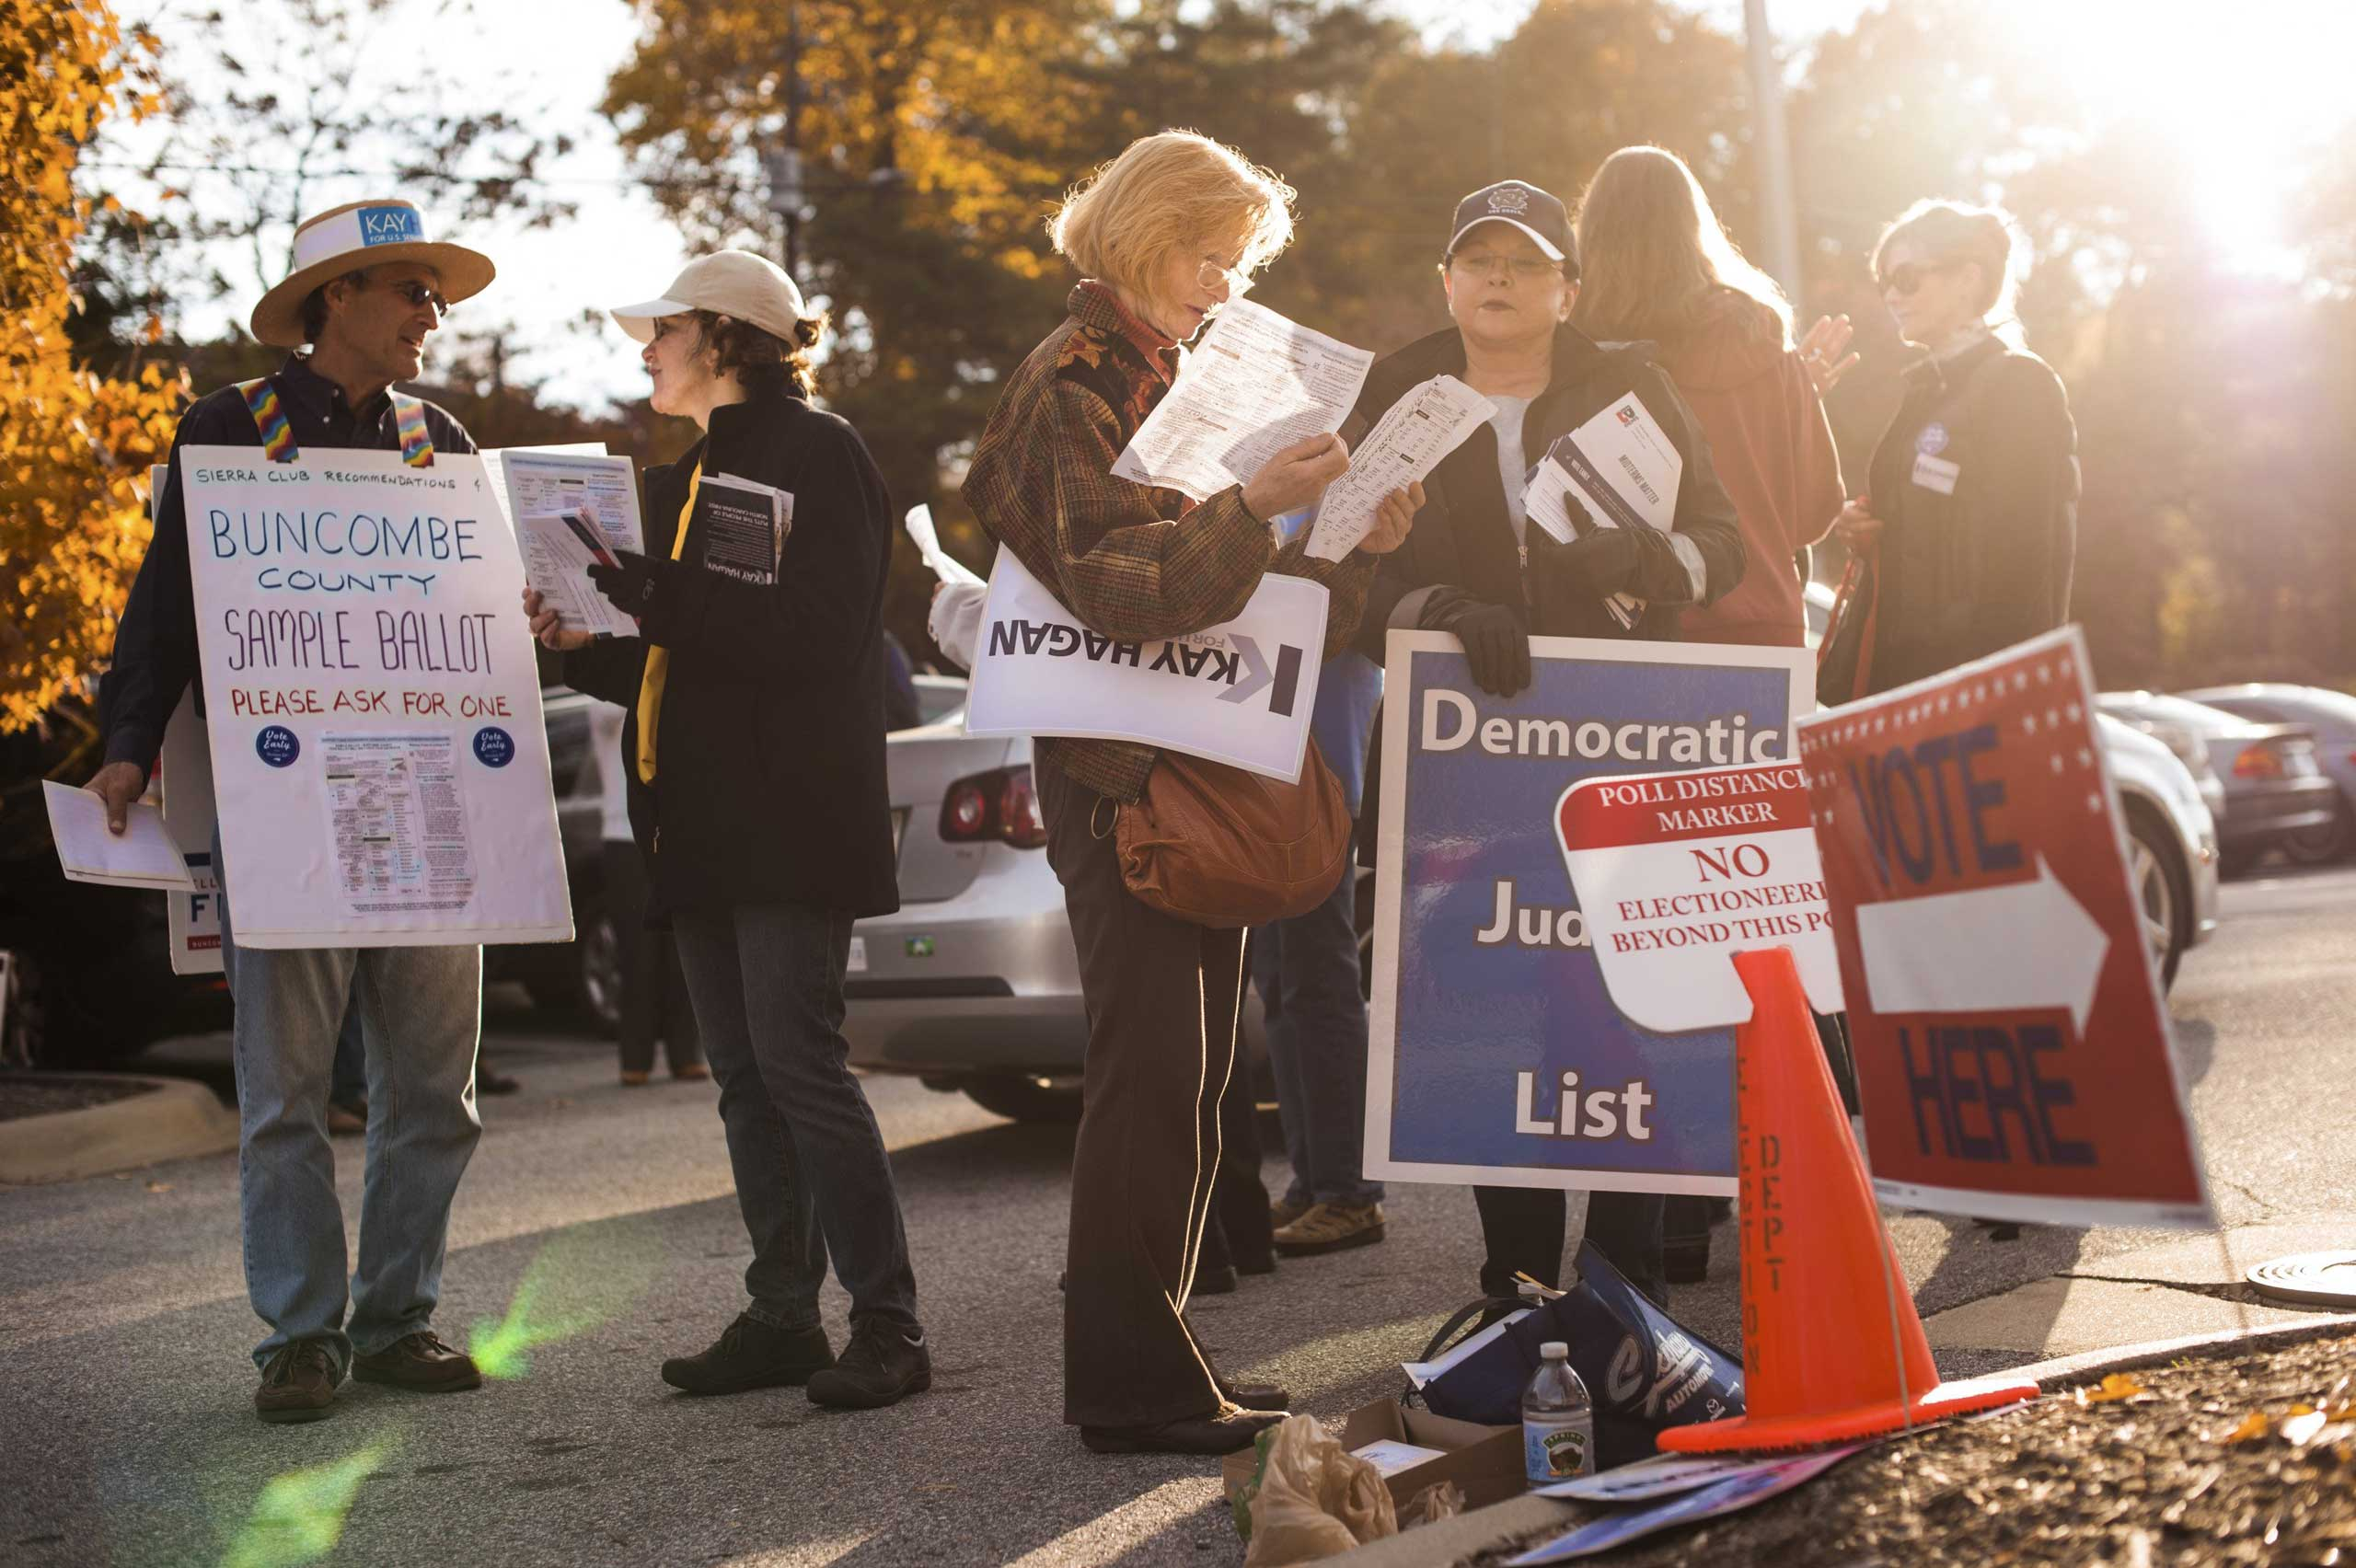 Supporters of Sen. Kay Hagan (D-N.C.) outside of a polling place in Asheville, N.C., Oct. 28, 2014.